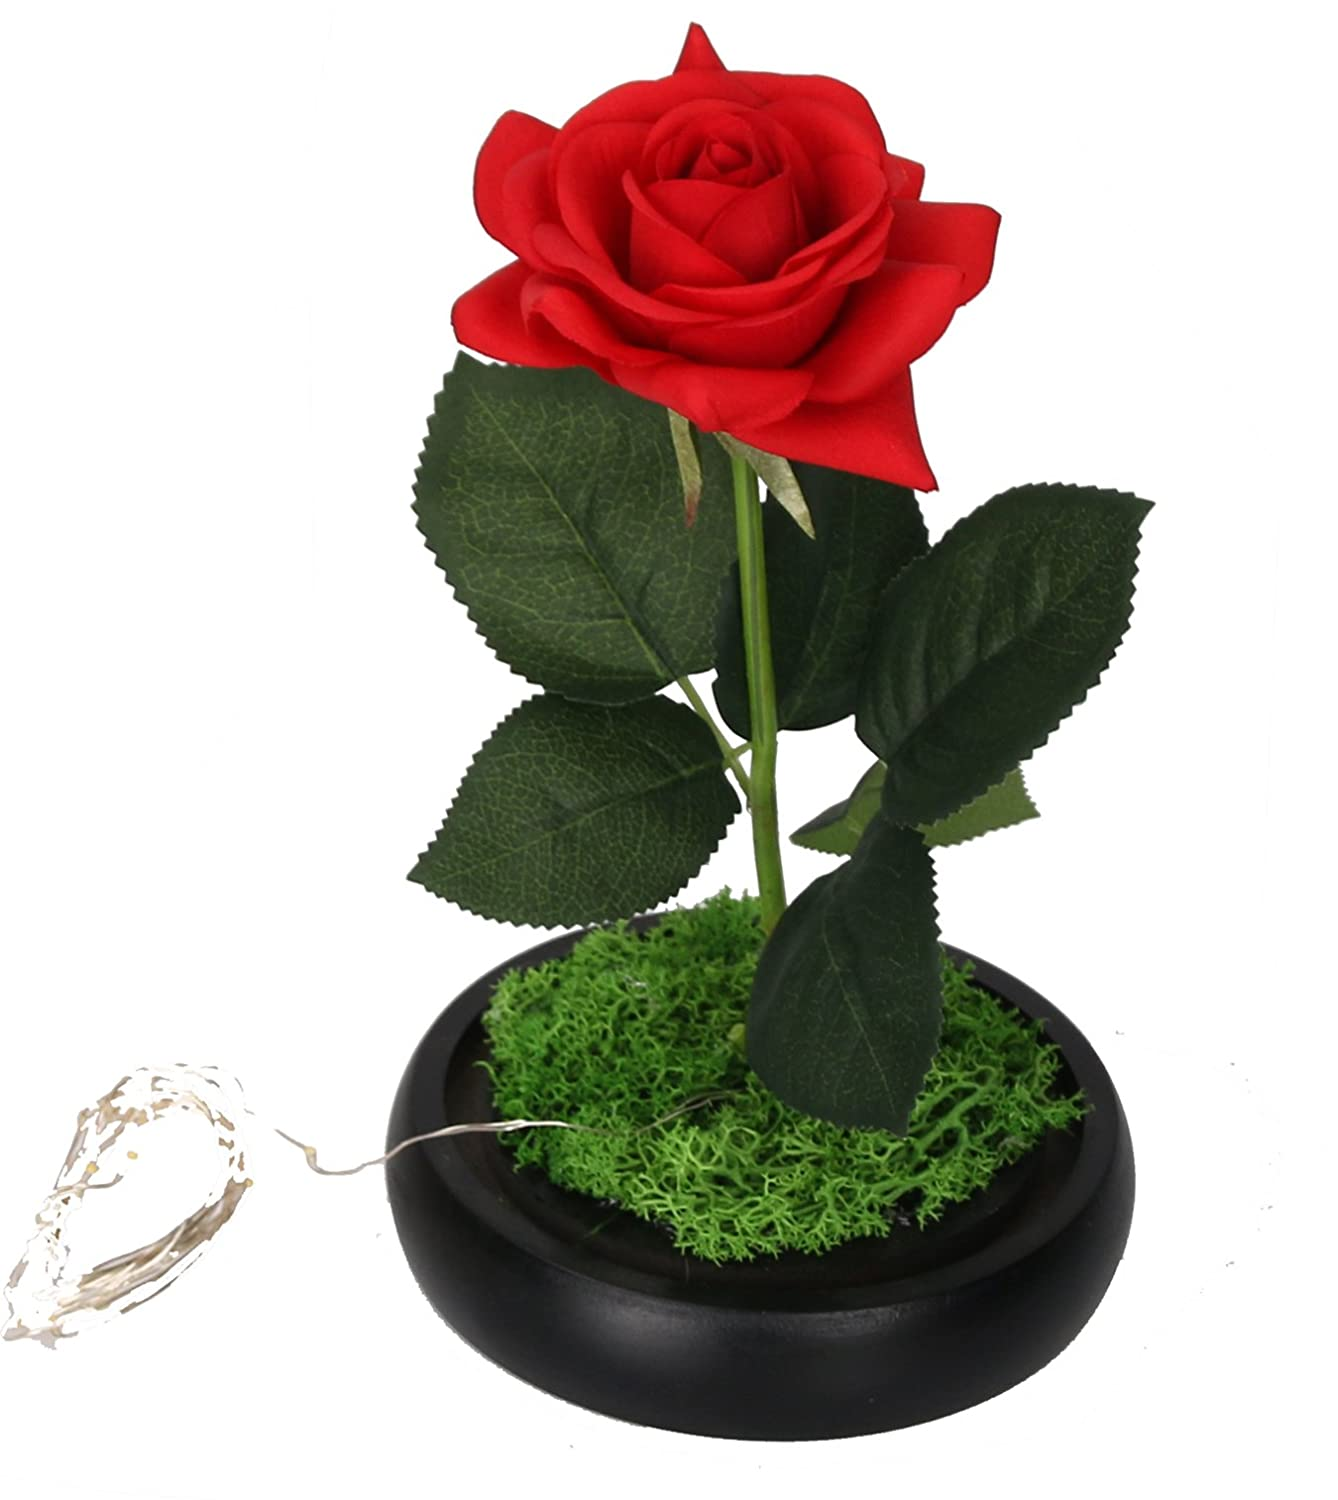 CaoBin Red Silk Rose and LED Light that Lasts Forever in Glass Dome Inspired and the Wooden Black Base Covered with Real Artificial Rose Floral Flower Best Gift for Her on Mothers Day